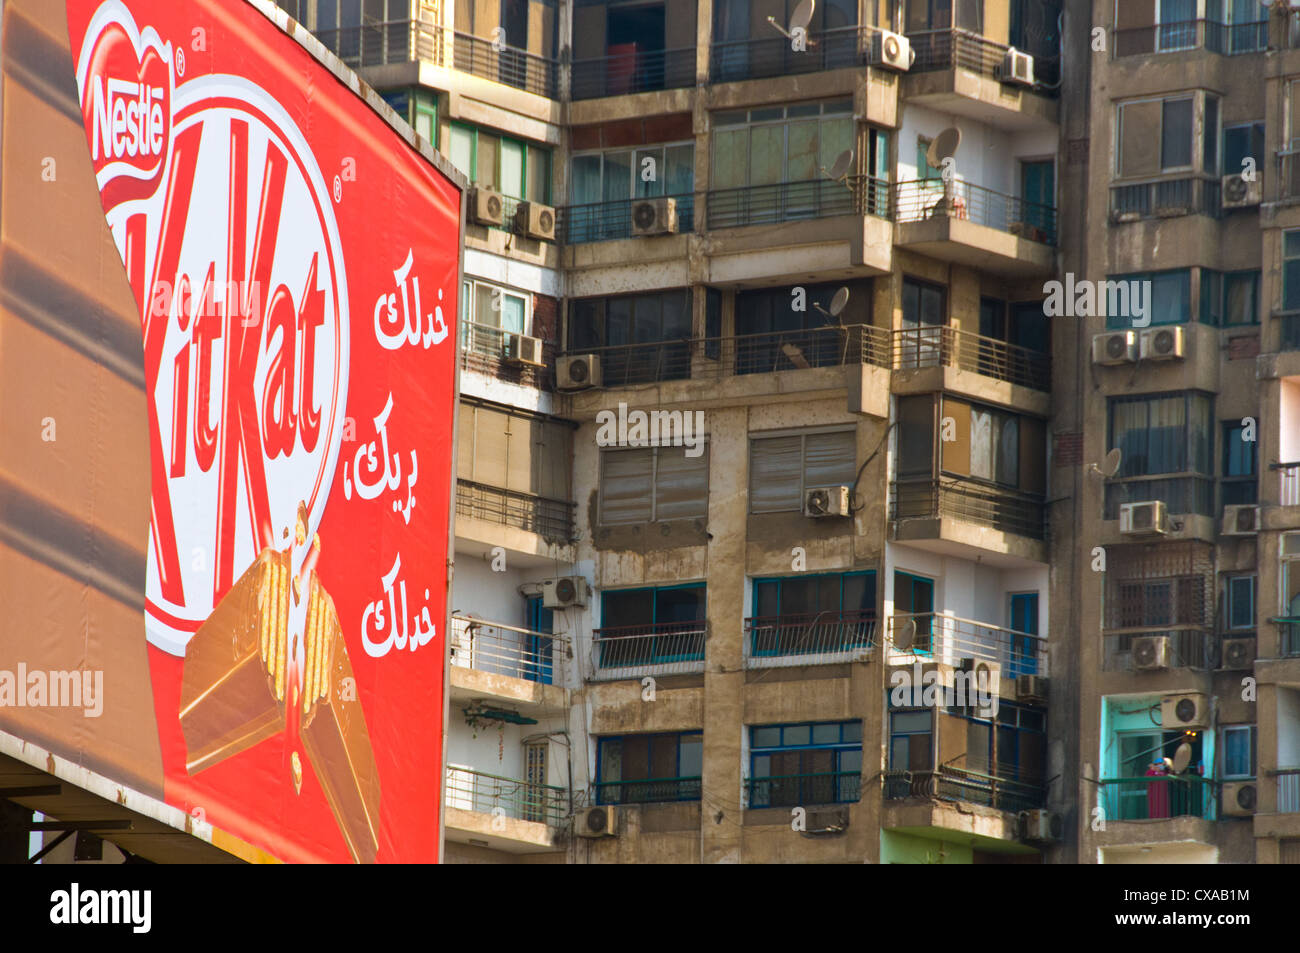 Advertising billboard Cairo Egypt - Stock Image